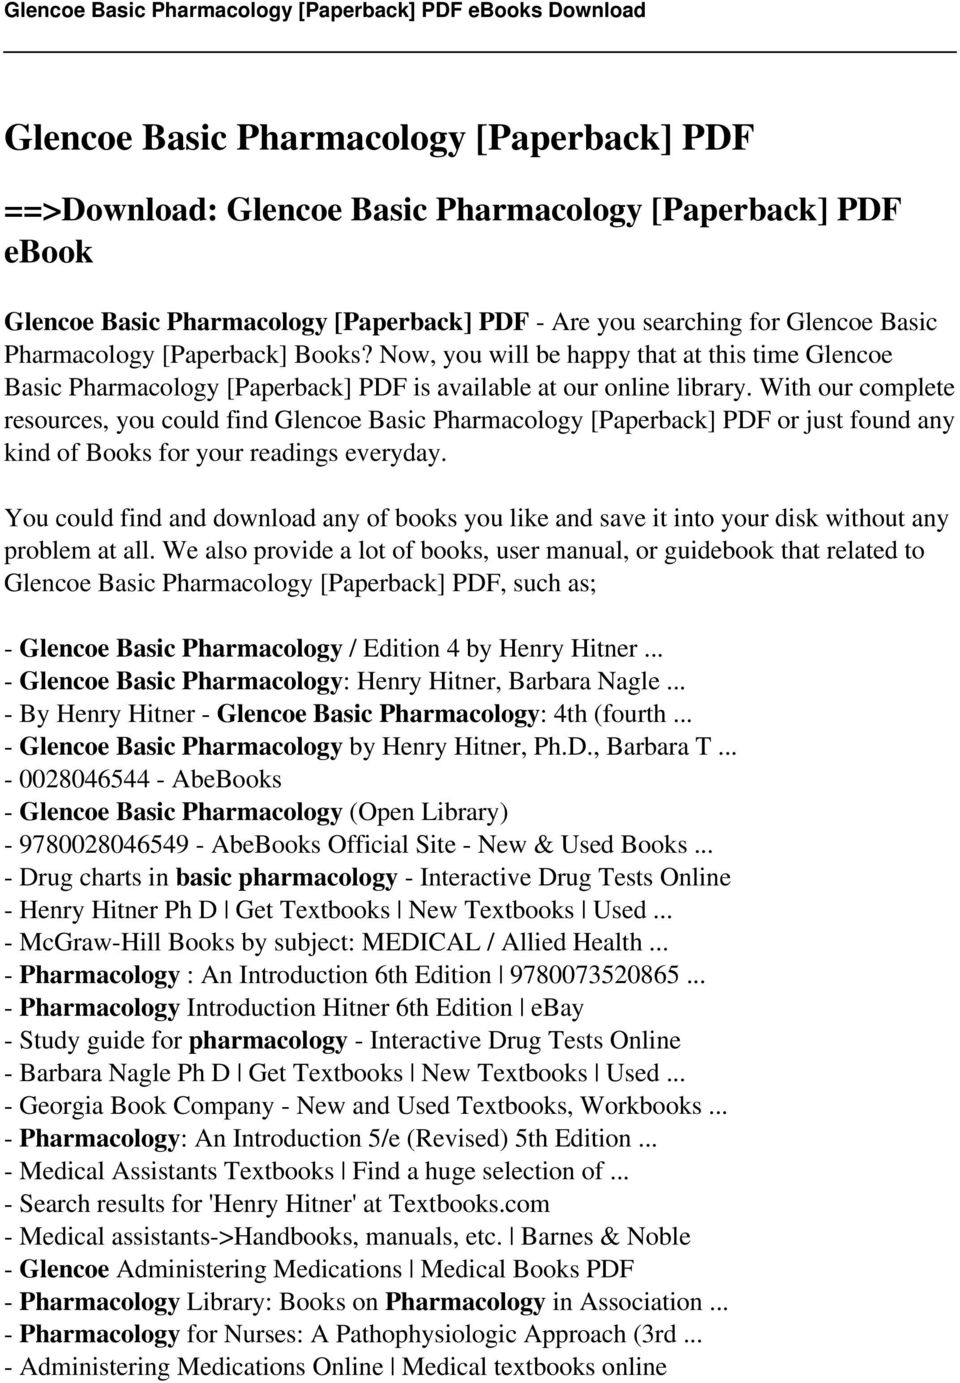 Glencoe basic pharmacology paperback pdf pdf with our complete resources you could find glencoe basic pharmacology paperback pdf or fandeluxe Gallery